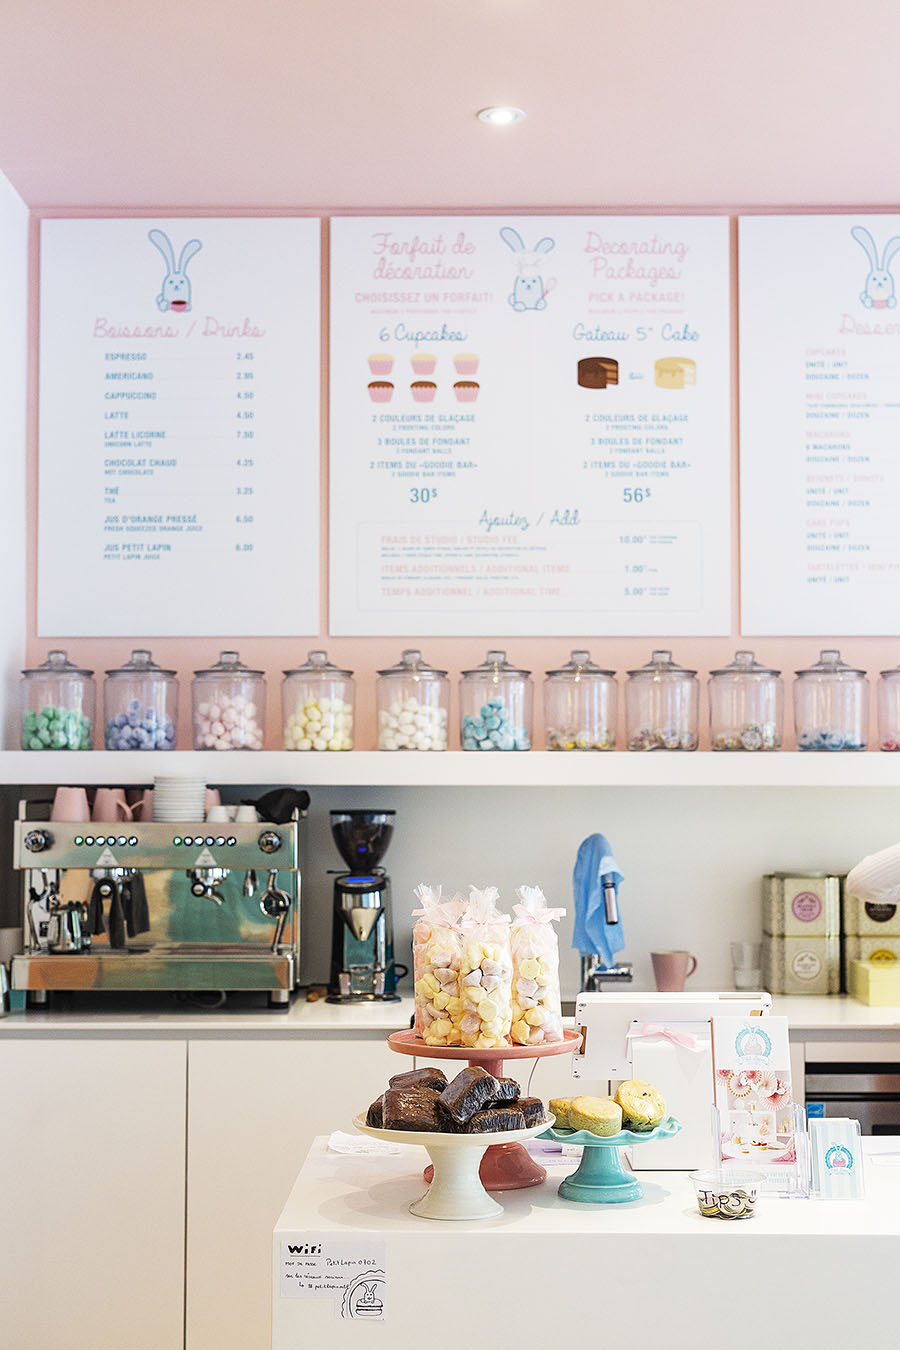 Petit Lapin patisserie, Montreal - 91 Magazine Instagrammer's guide to Montreal, Canada